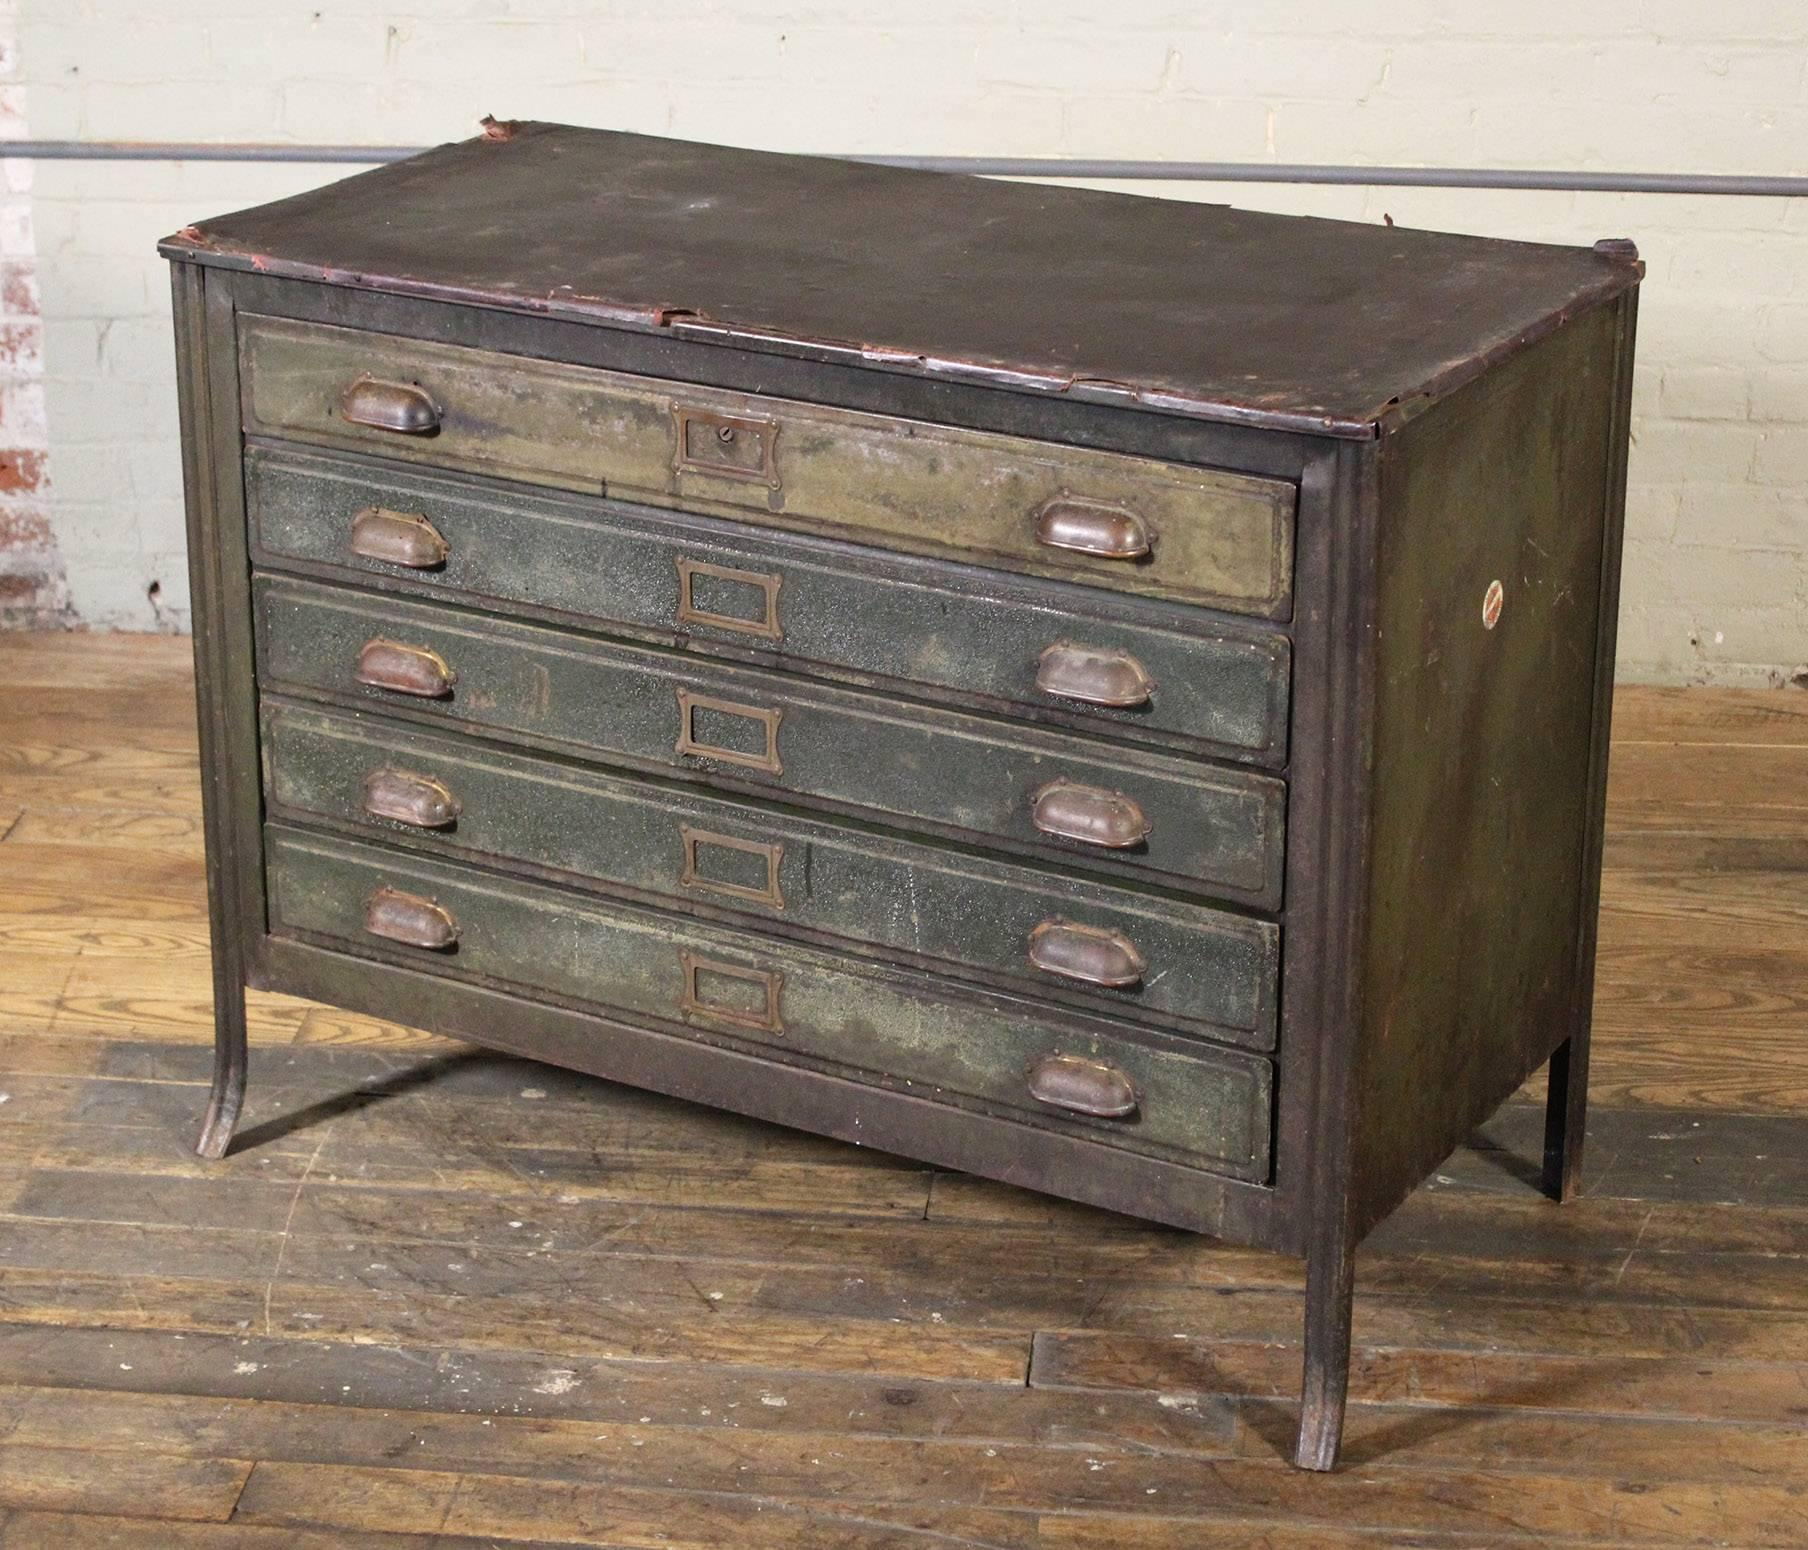 Metal Lateral File Storage Cabinet Vintage Industrial Table Worn Leather  Top At 1stdibs